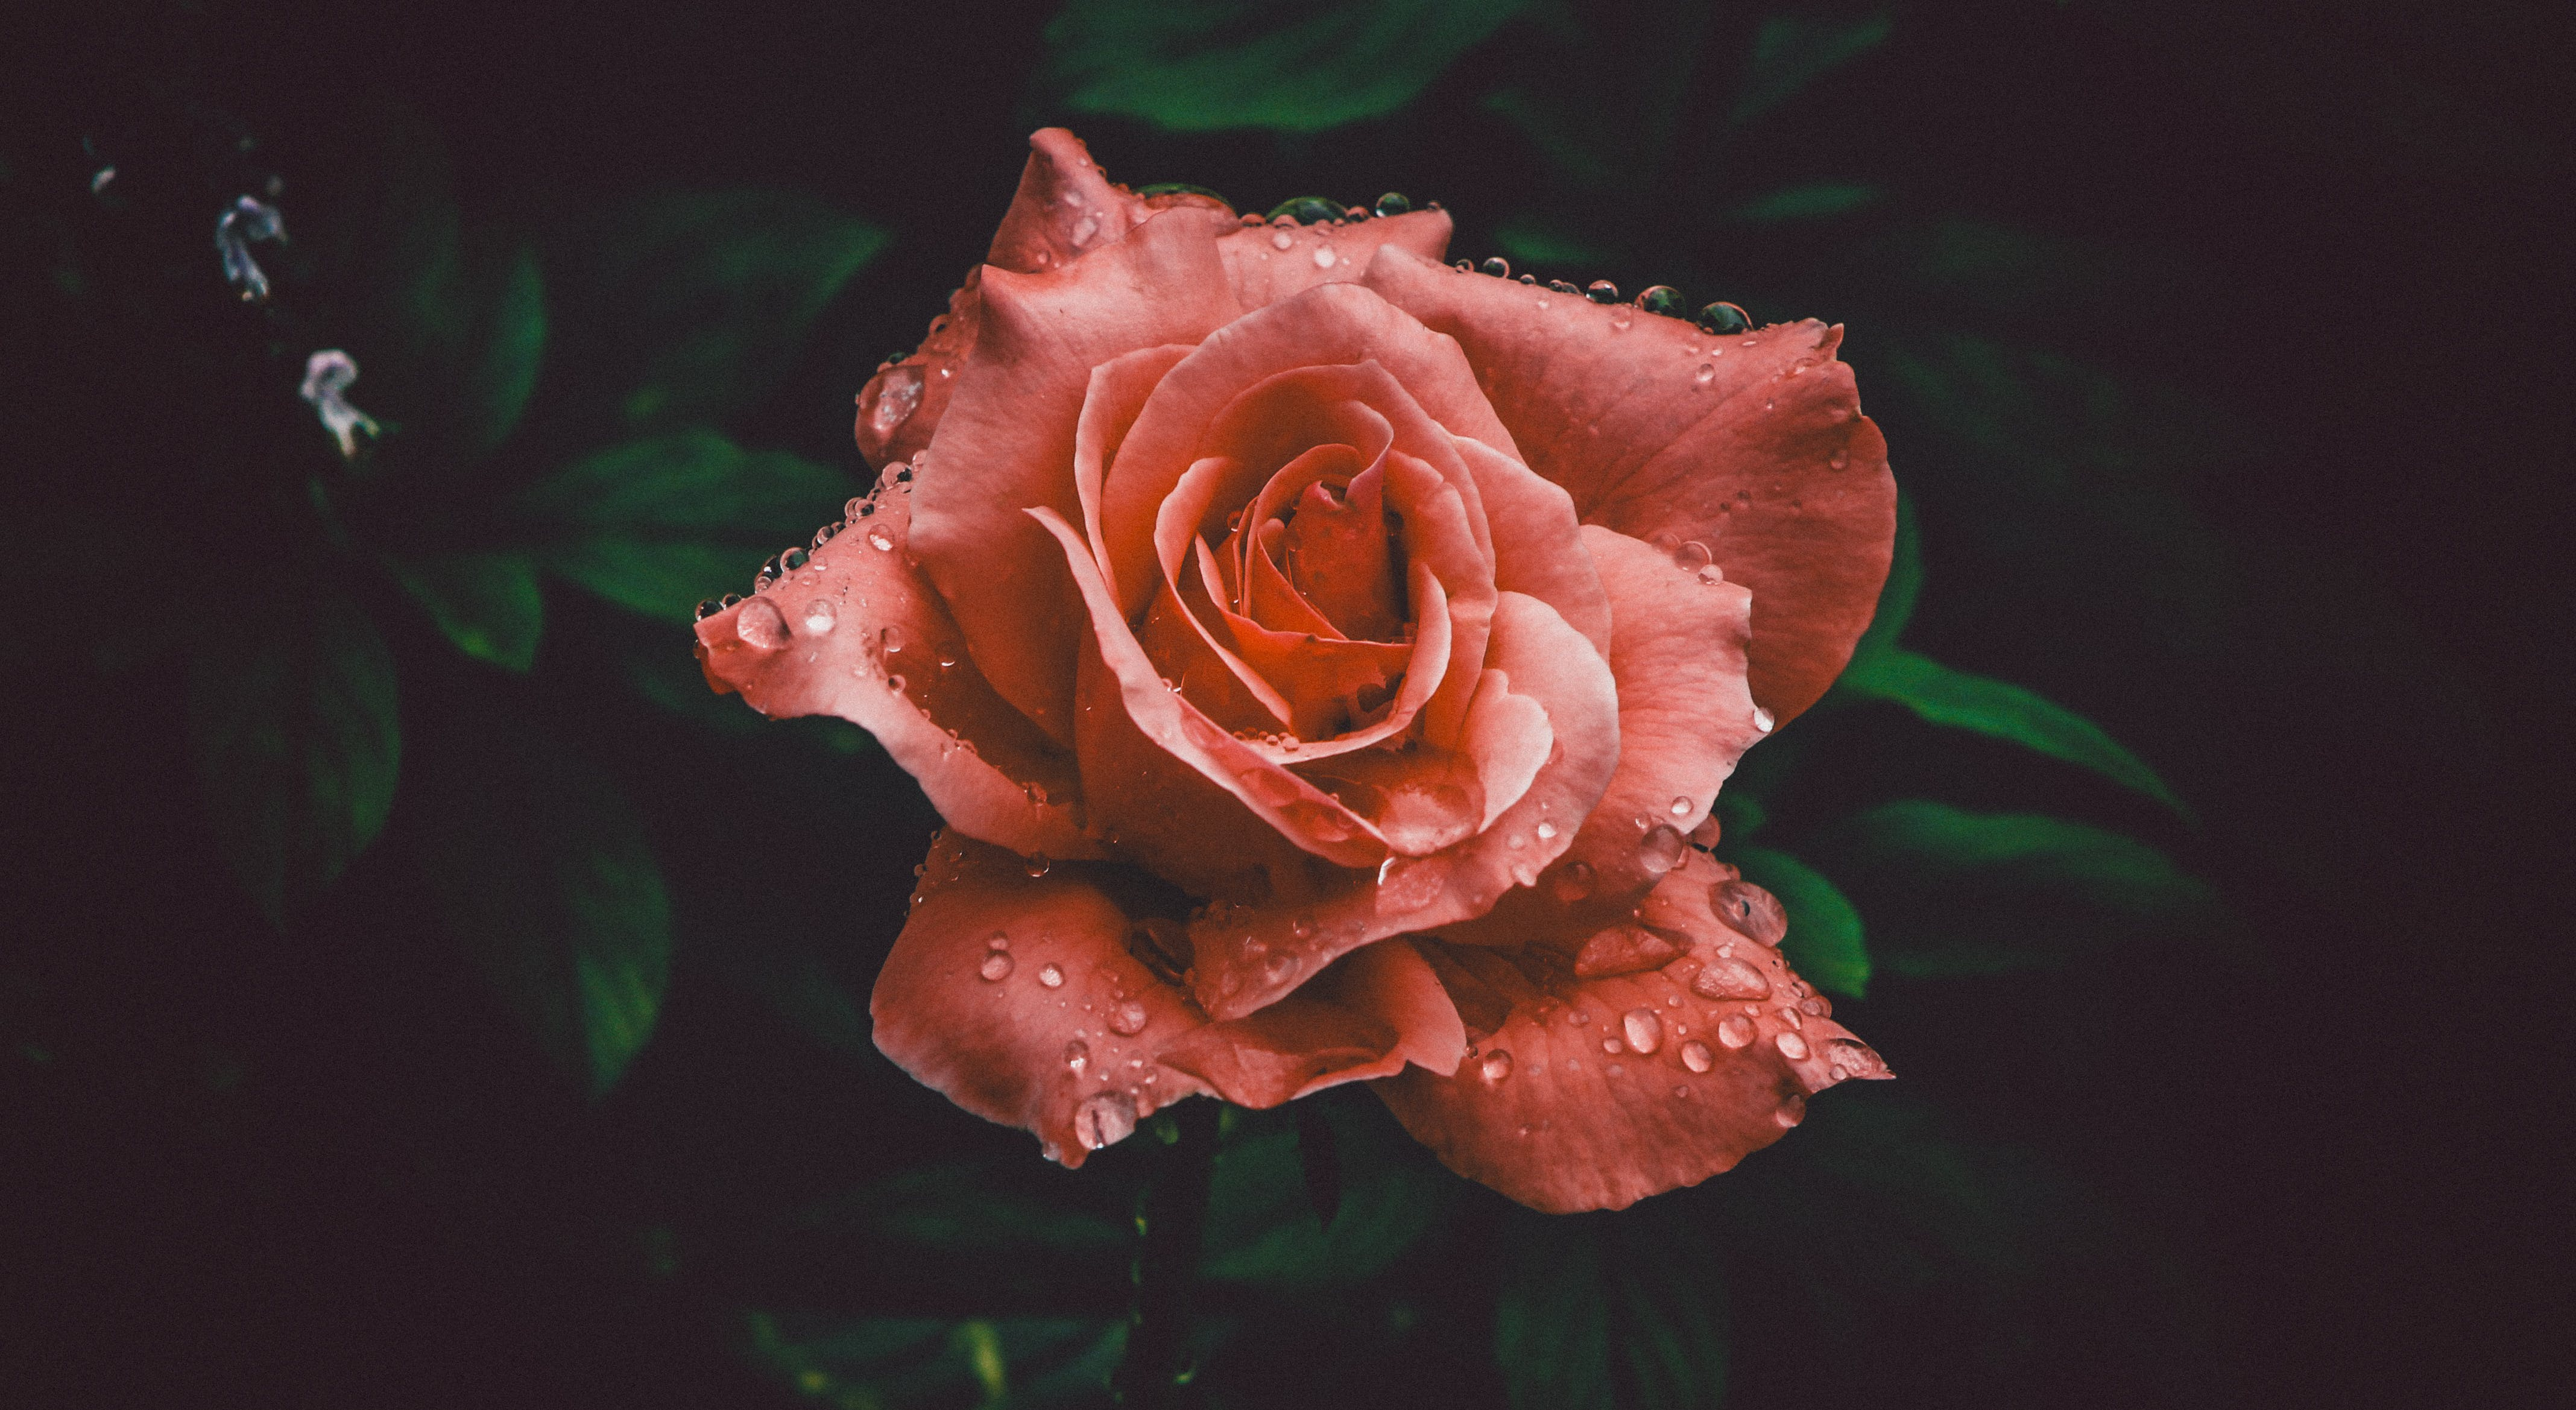 Red Rose Flower in Closeup Photography